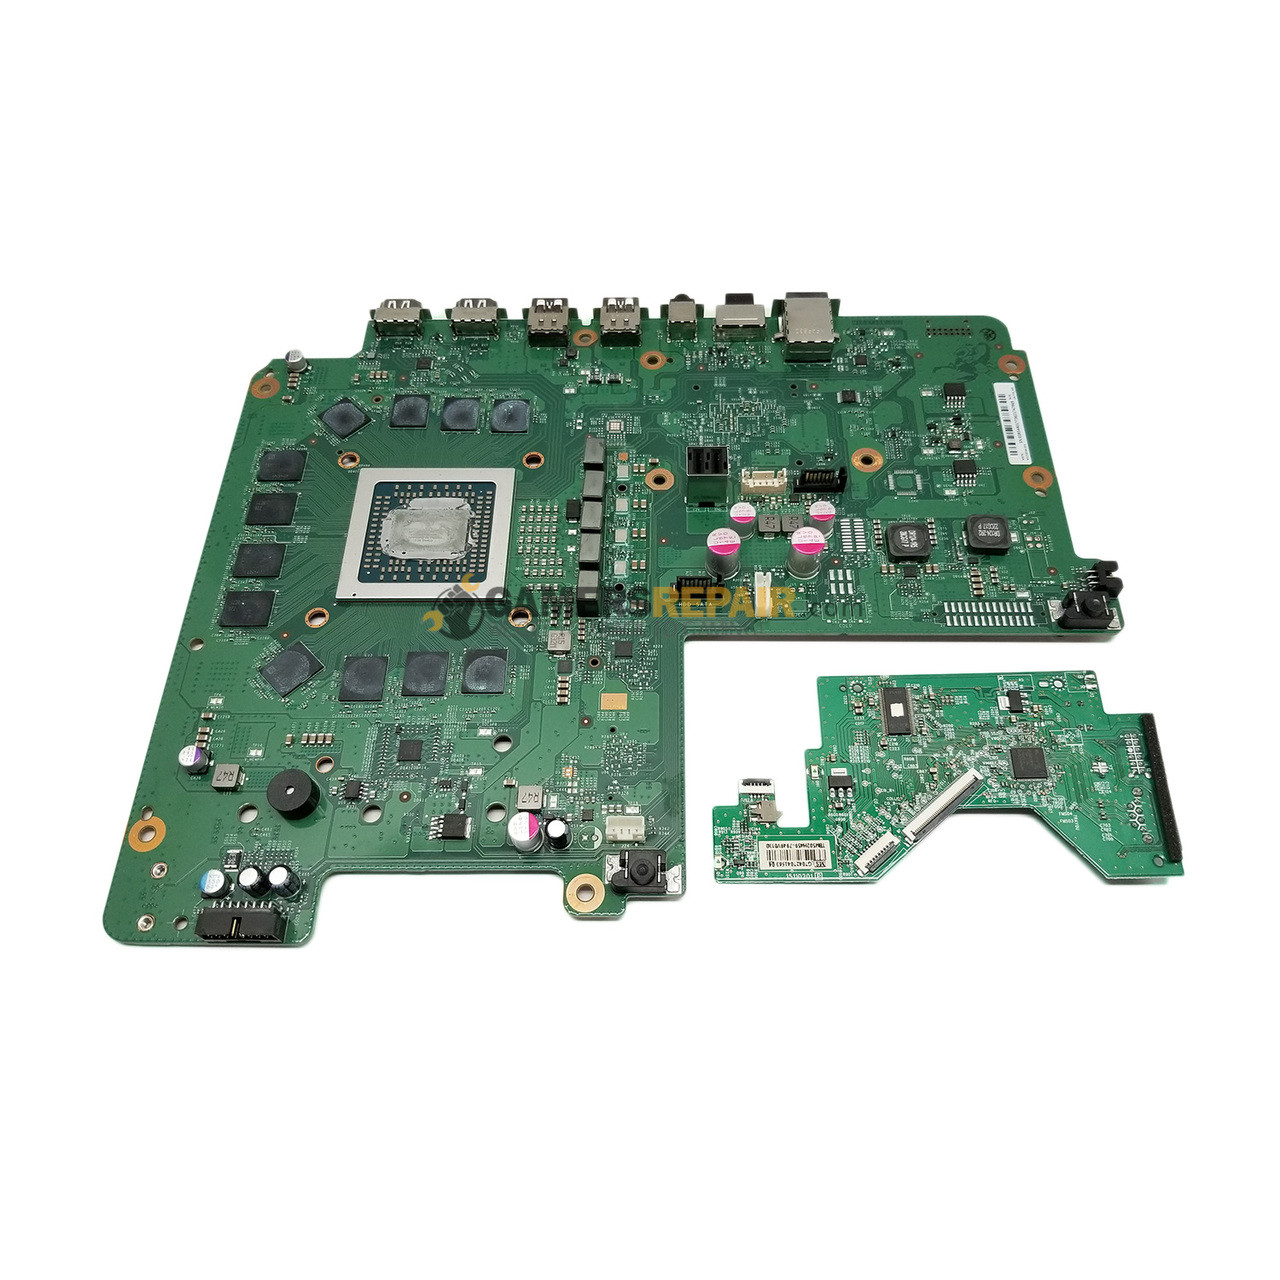 OEM Xbox ONE X Replacement Motherboard & Disc Drive PCB (v1)